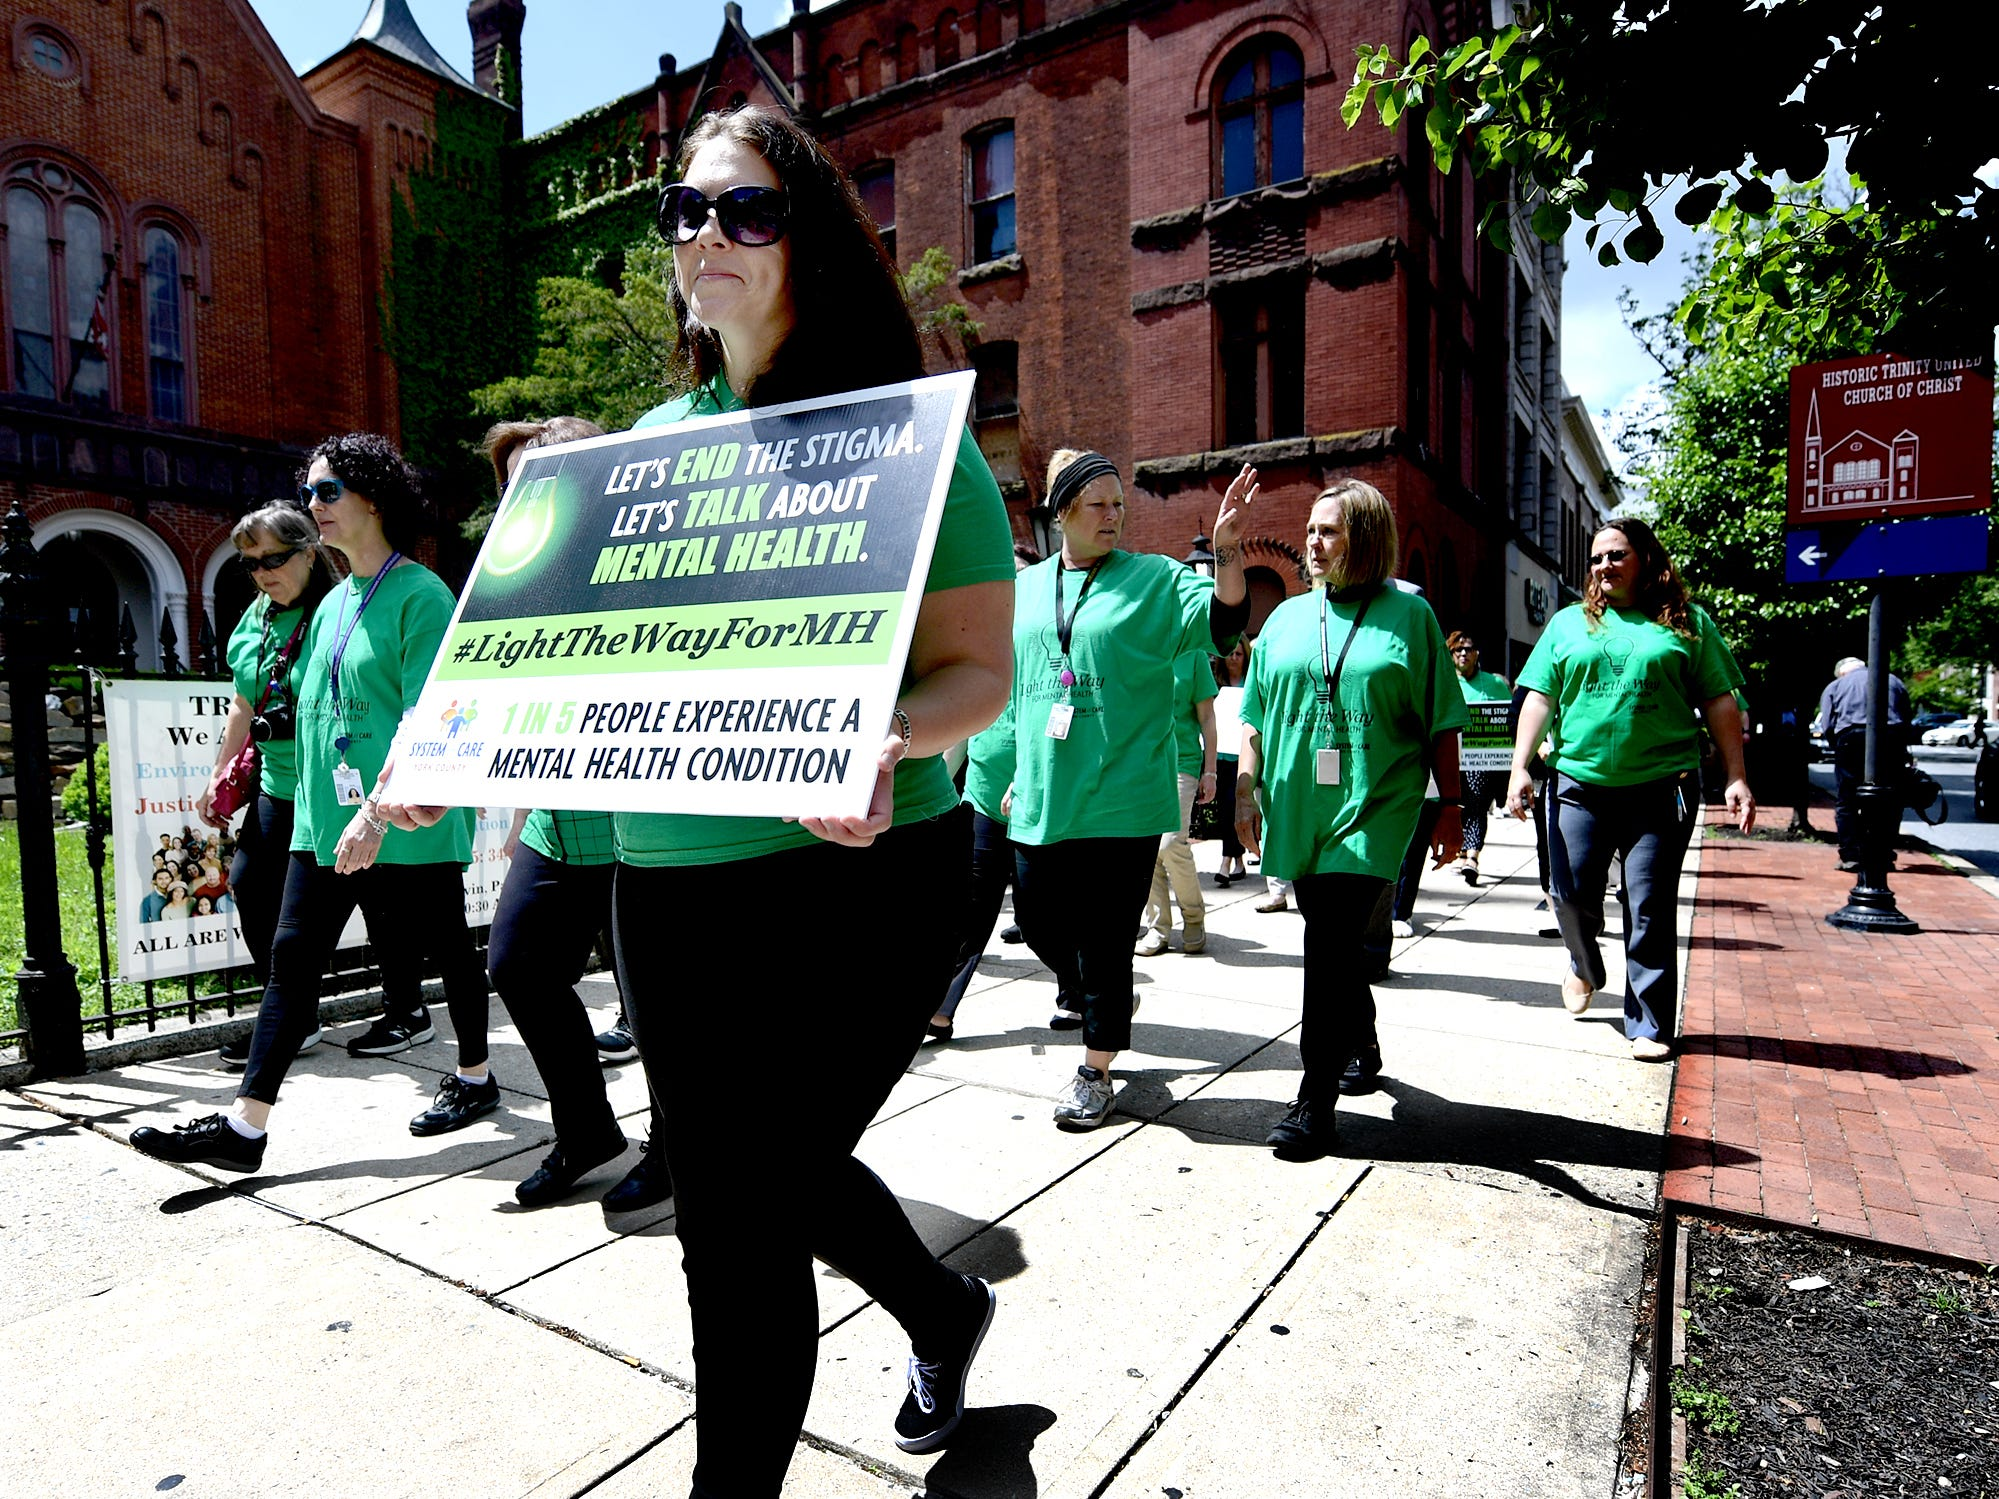 Marchers, many who are York County Human Services employees, participate in the Walk To Raise Awareness About Mental Health in York City Monday, May 6, 2019. The York County System of Care in collaboration with York County Human Services sponsored the walk during Mental Health Awareness Month. Area business and organizations will be displaying green lighting through May 12th to show support. Bill Kalina photo